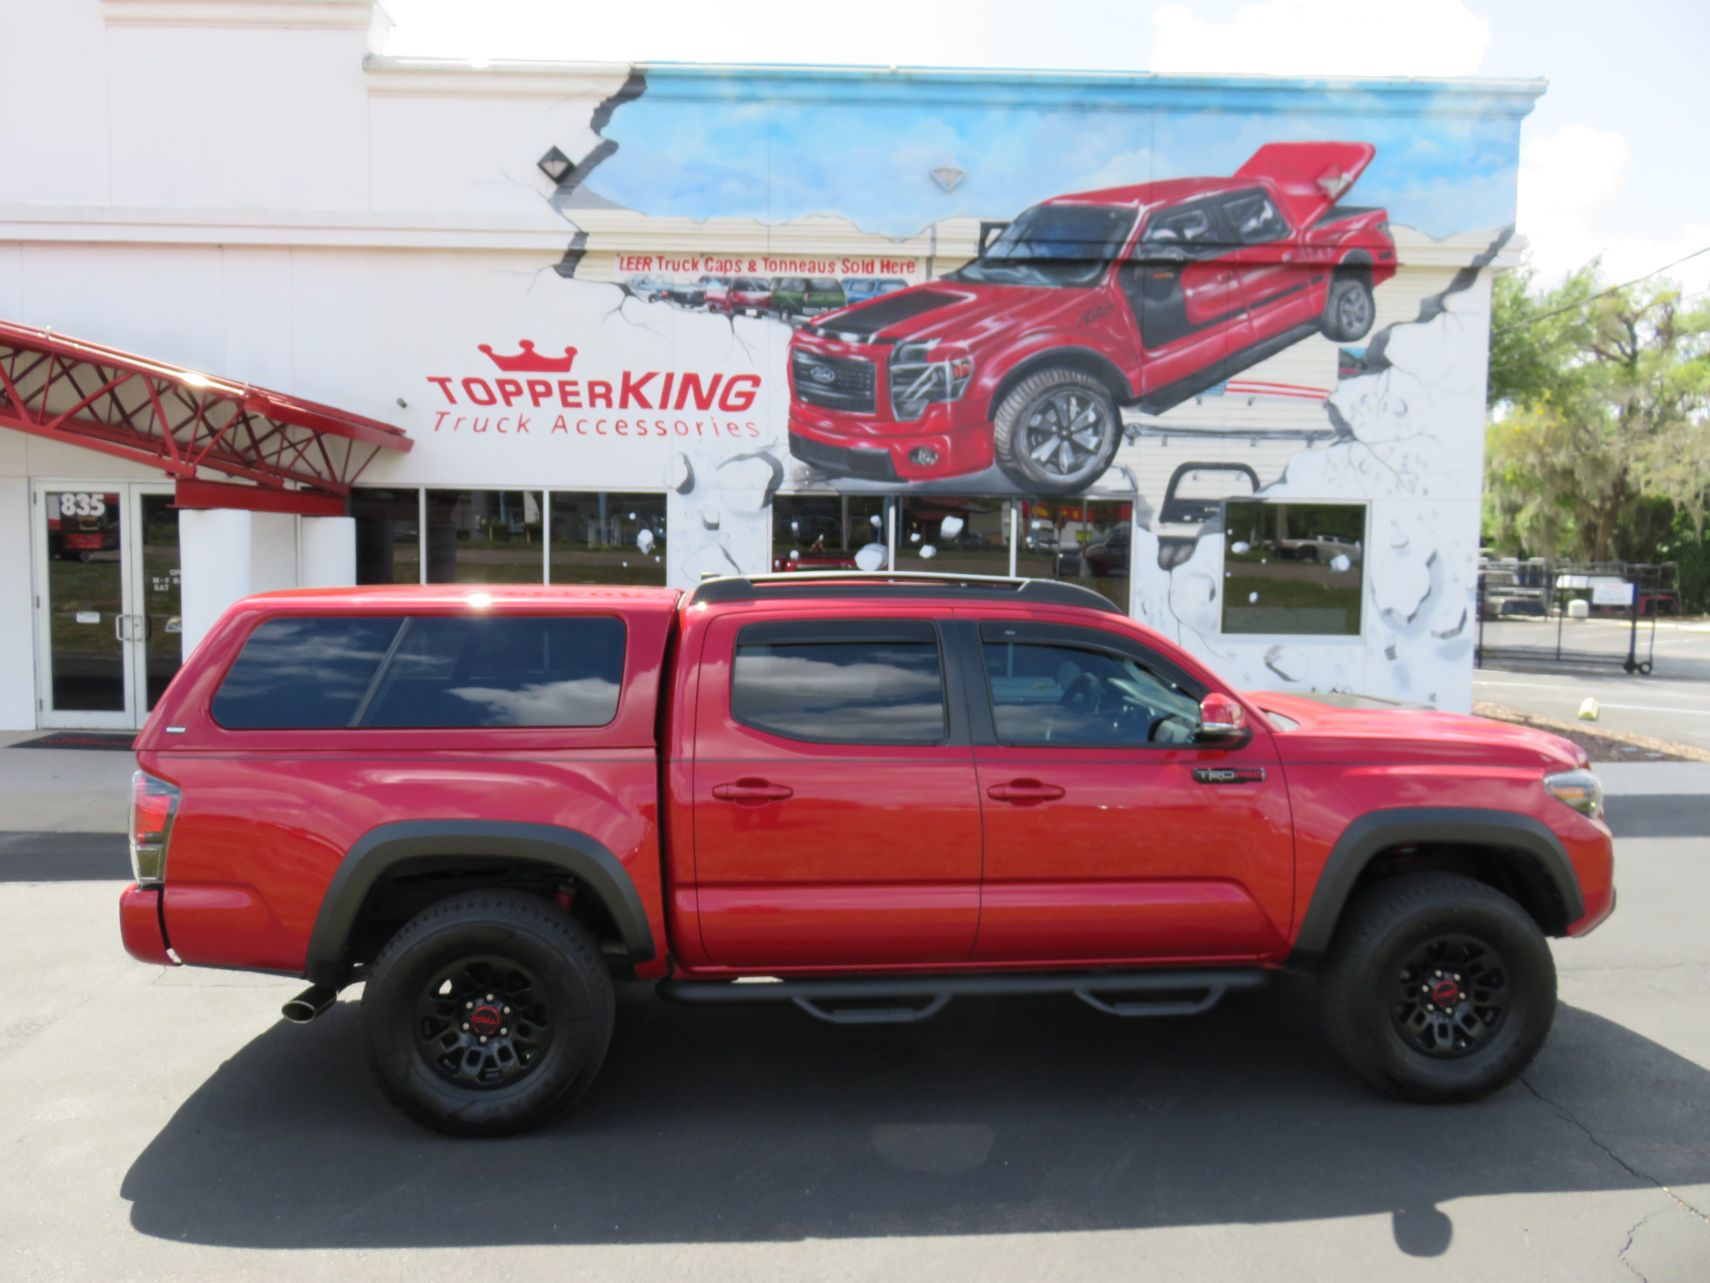 2019 Red Toyota Tacoma Ranch Icon Blackout Nerf Bars Roof Racks Hitch